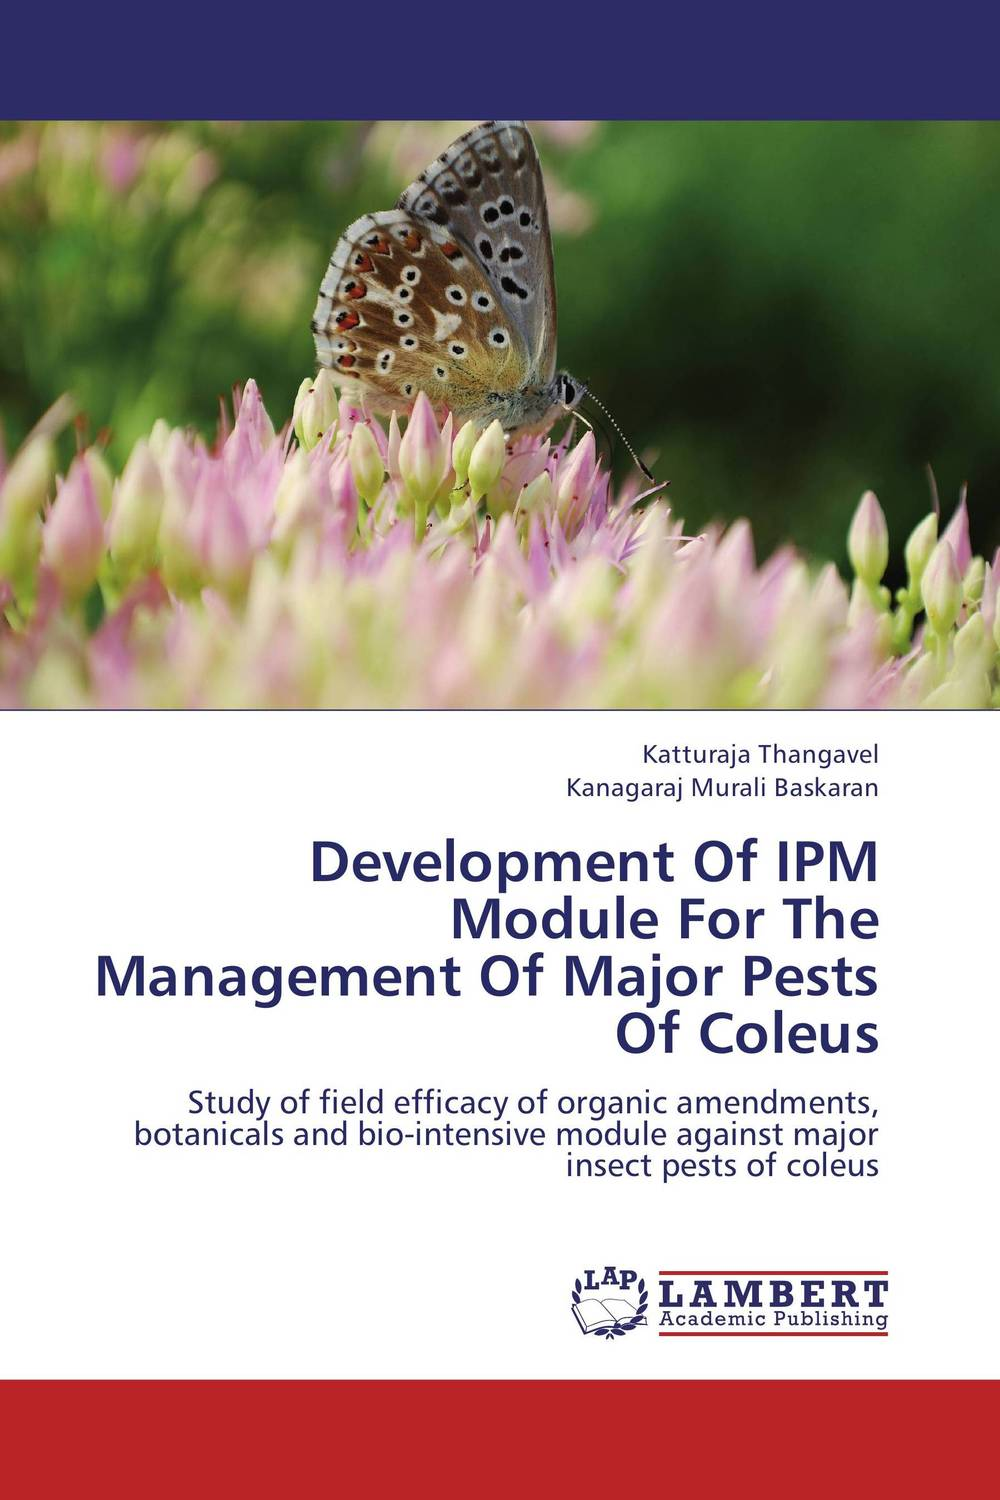 Development Of IPM Module For The Management Of Major Pests Of Coleus jayaprakash arumugam and mohan s egg removal device for the management of stored product insects